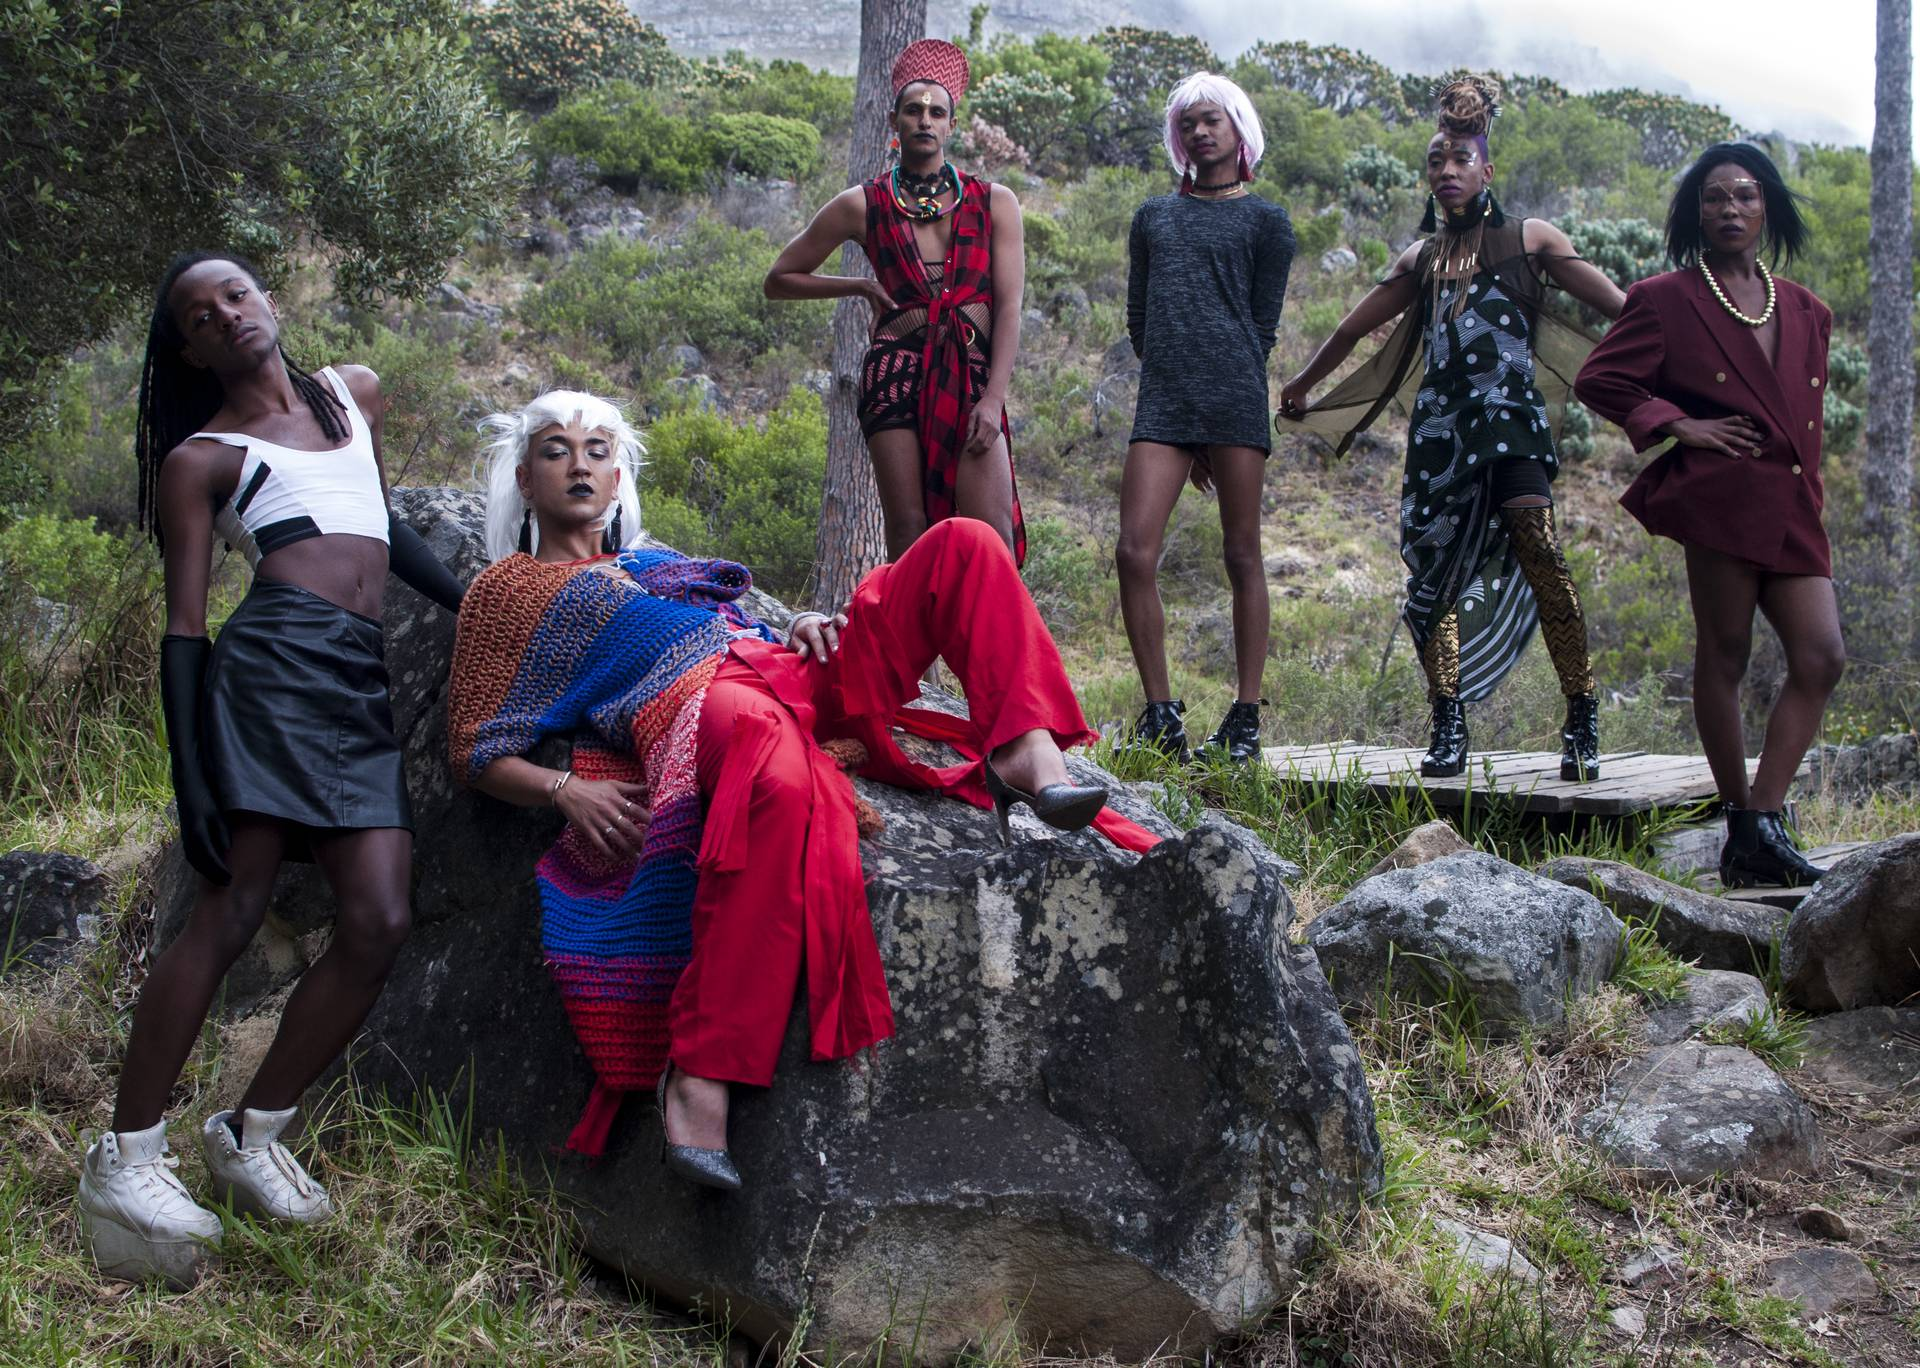 "Fashion maven Gavin Mikey Collins co-ordinated and directed the shoot that saw the likes of Umlilo, Kieron Jina, Sandiso Ngubane, Githan Coopoo, Vuyisani Bisholo, Quaid ""Queezy"" Heneke and Joshua Allen disrupt the heteronormative and colonial gaze with their unwavering celebration of femininity."